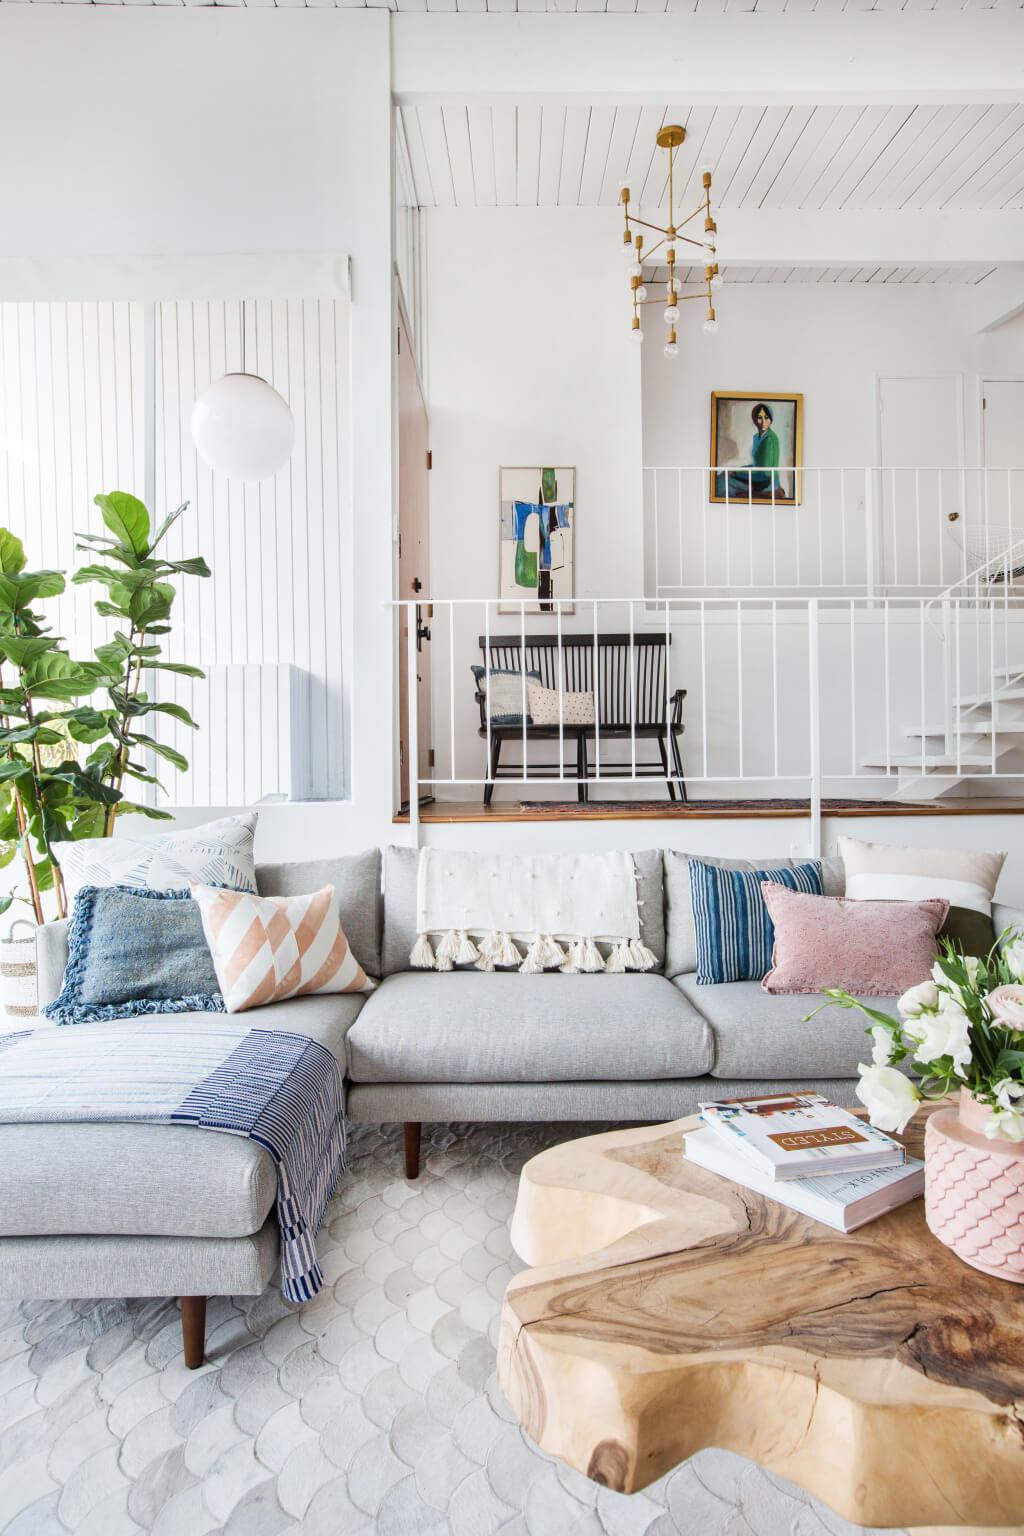 5 Home Decor Items You Shouldn't Spend Money On | Number 4: Pillows | Affordable decorating, budget-friendly decorating tips, budget-friendly design ideas